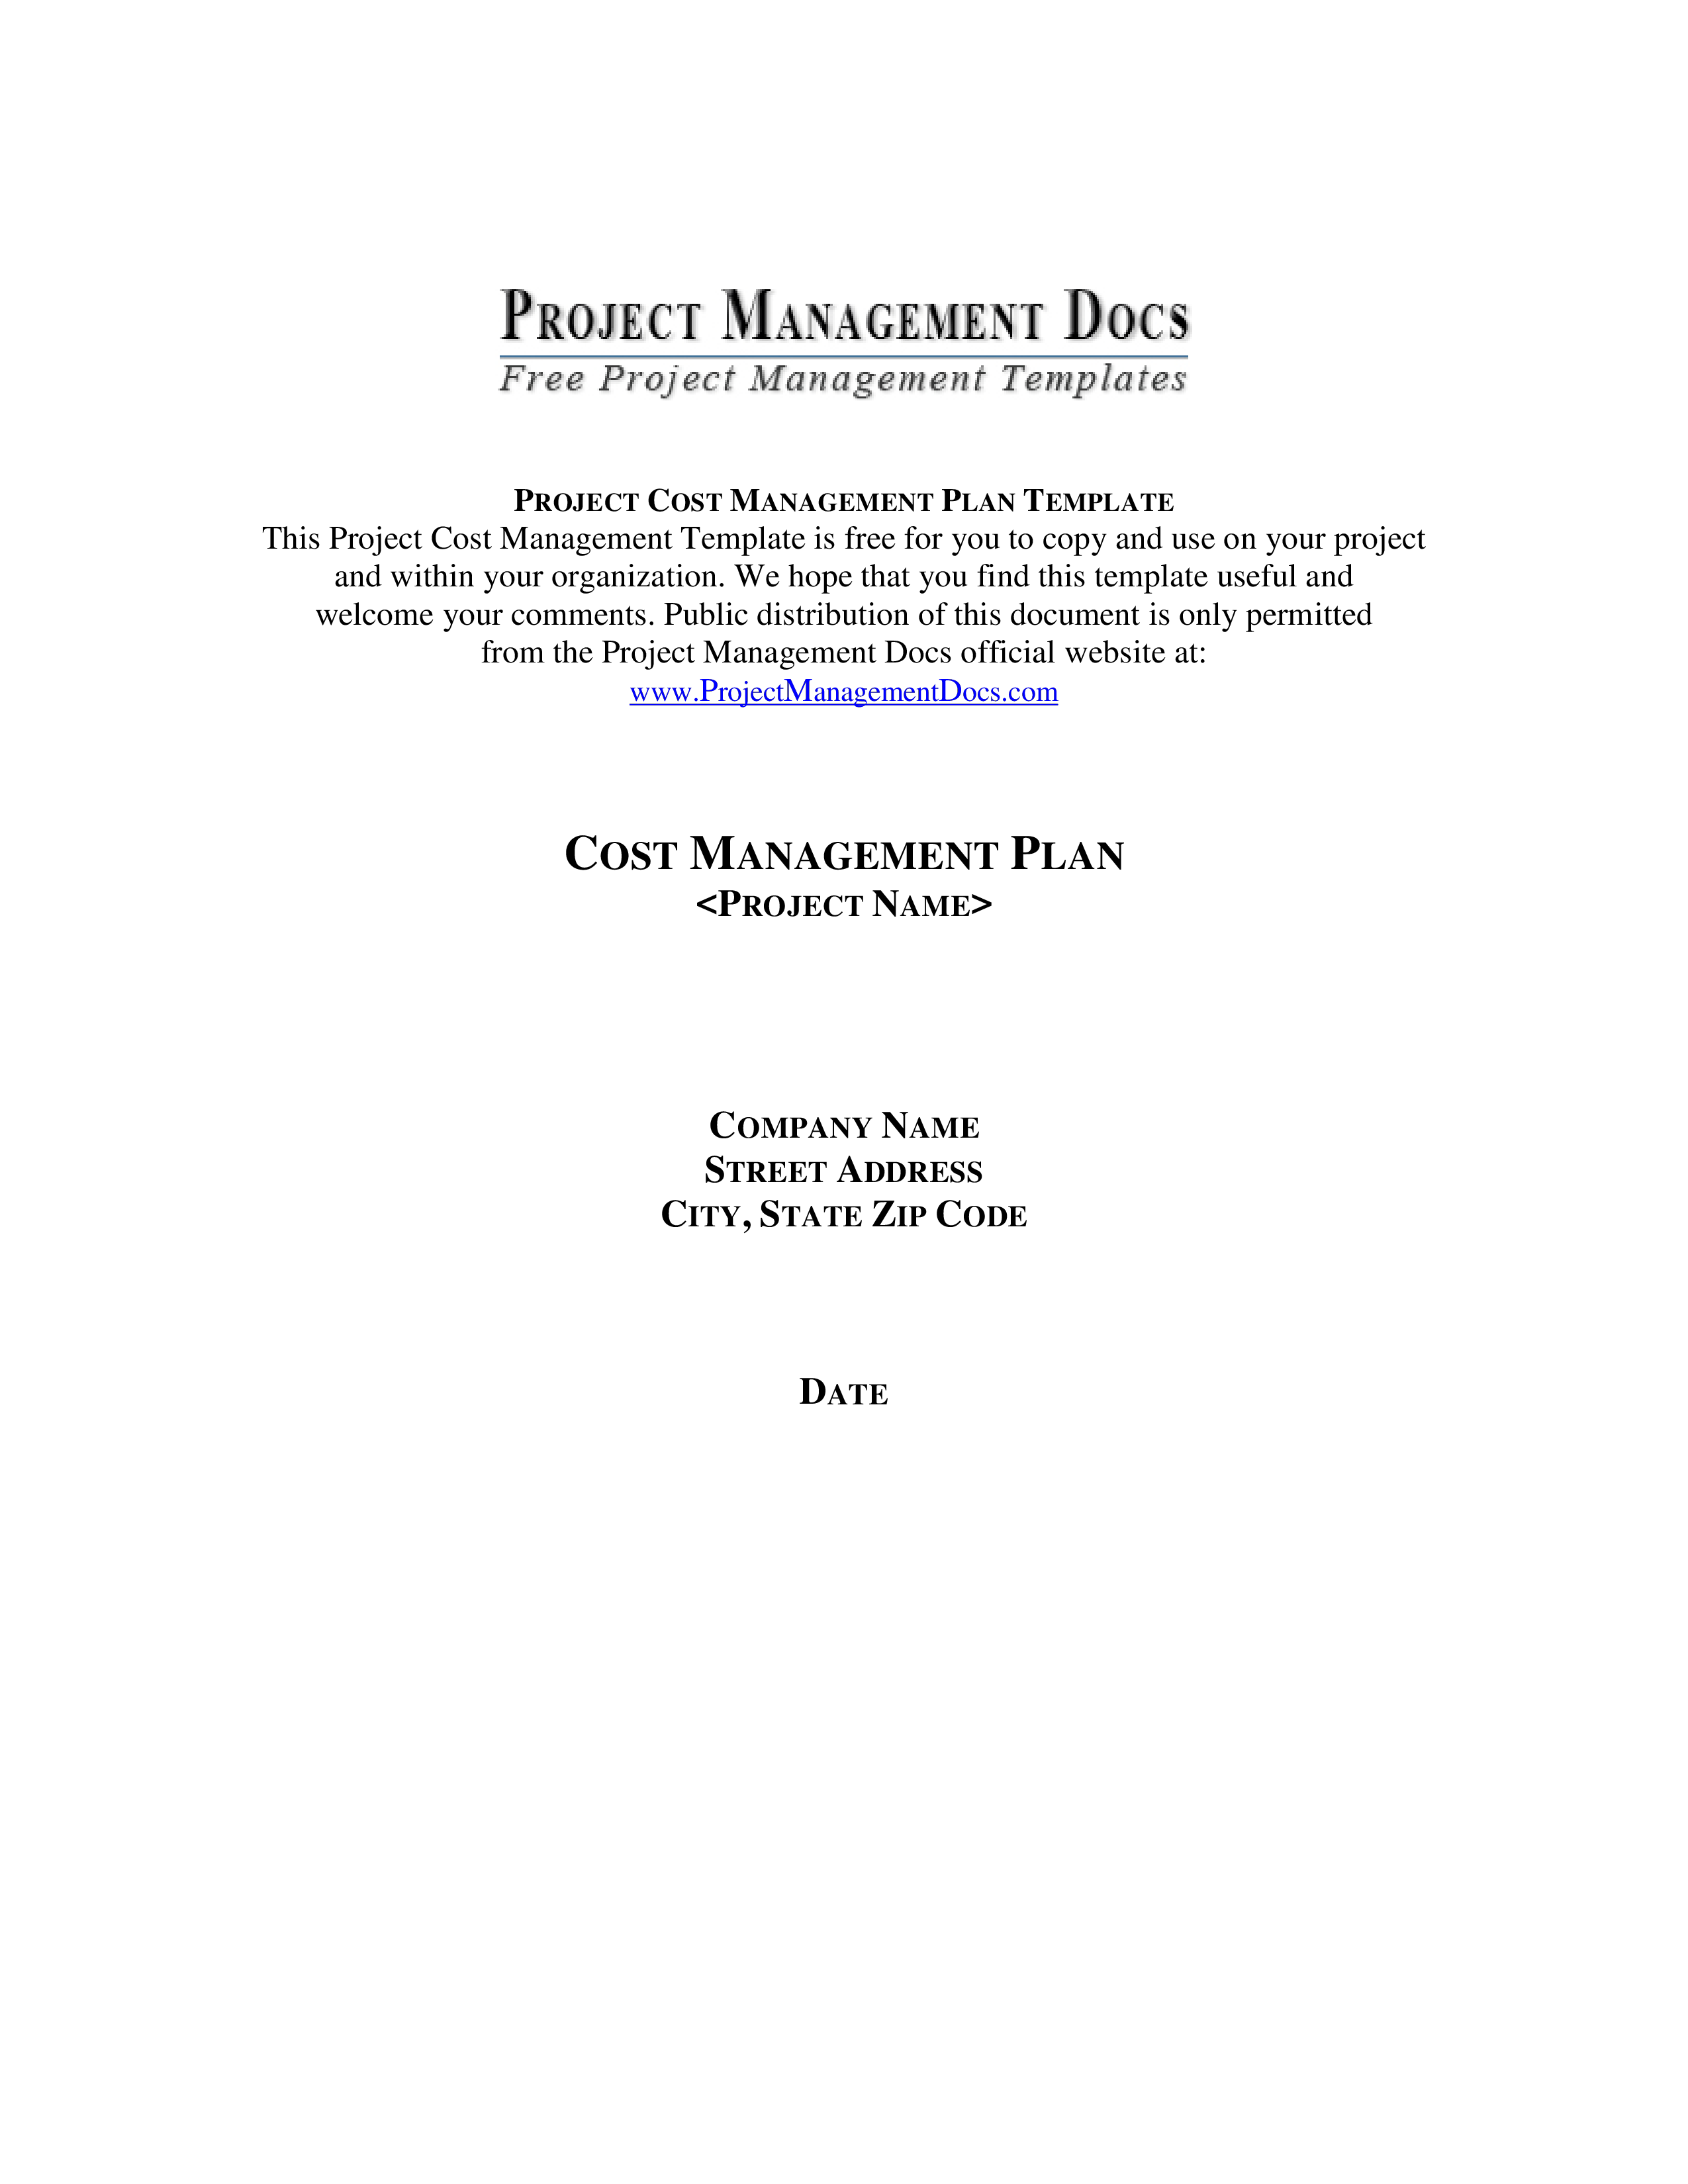 Cost Management Plan Template PMBOK Project Cost Management Plan - Pmp project management plan template